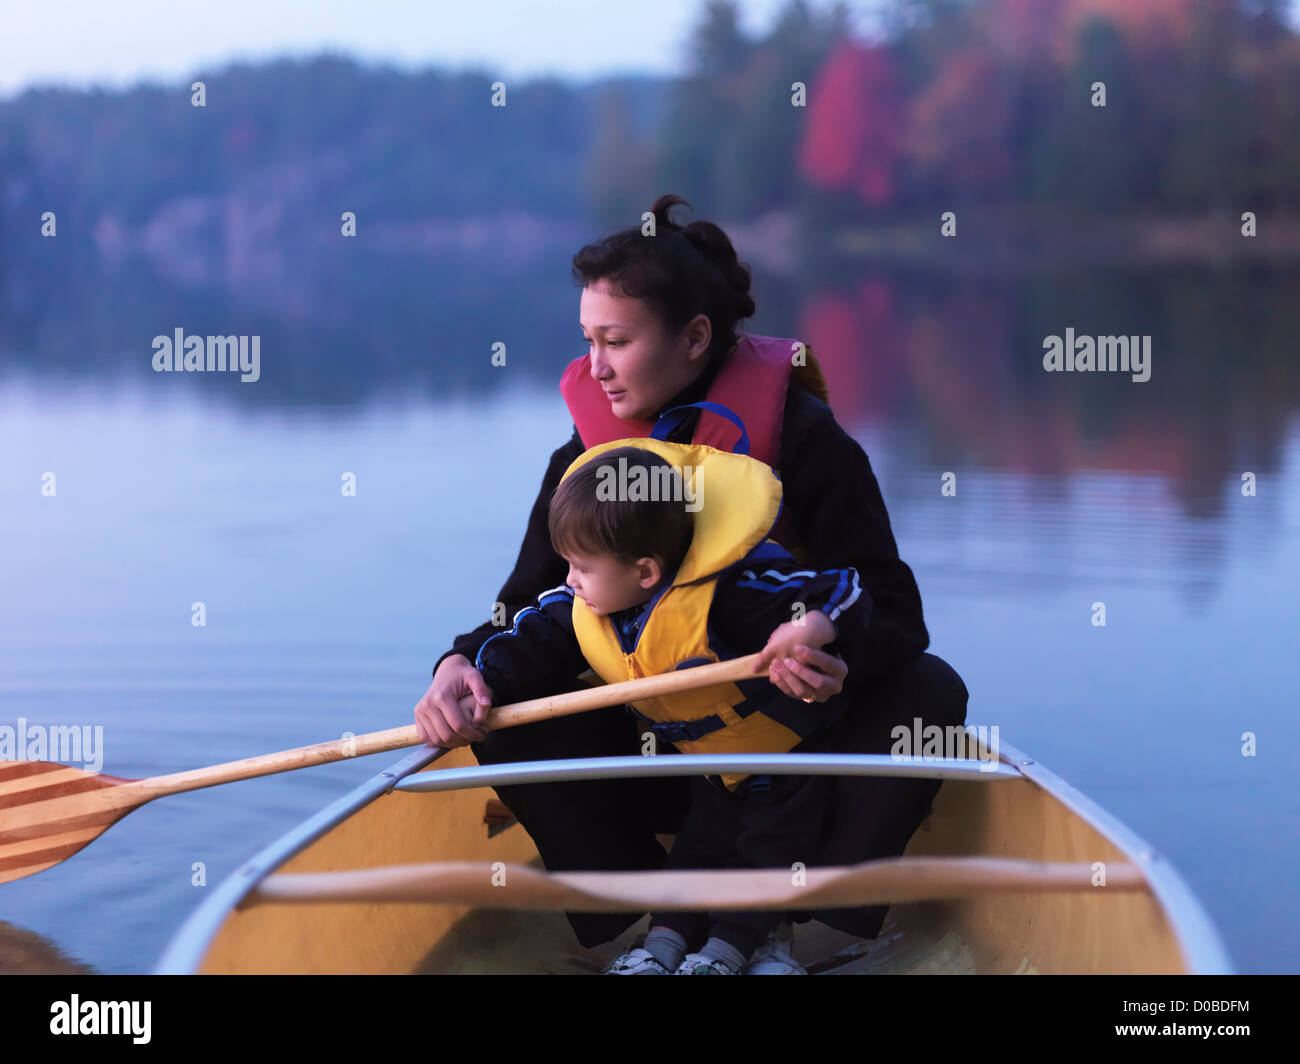 Mother with a three year old boy learning to paddle a canoe, fall nature scenery. Kilarney, Ontario, Canada. - Stock Image